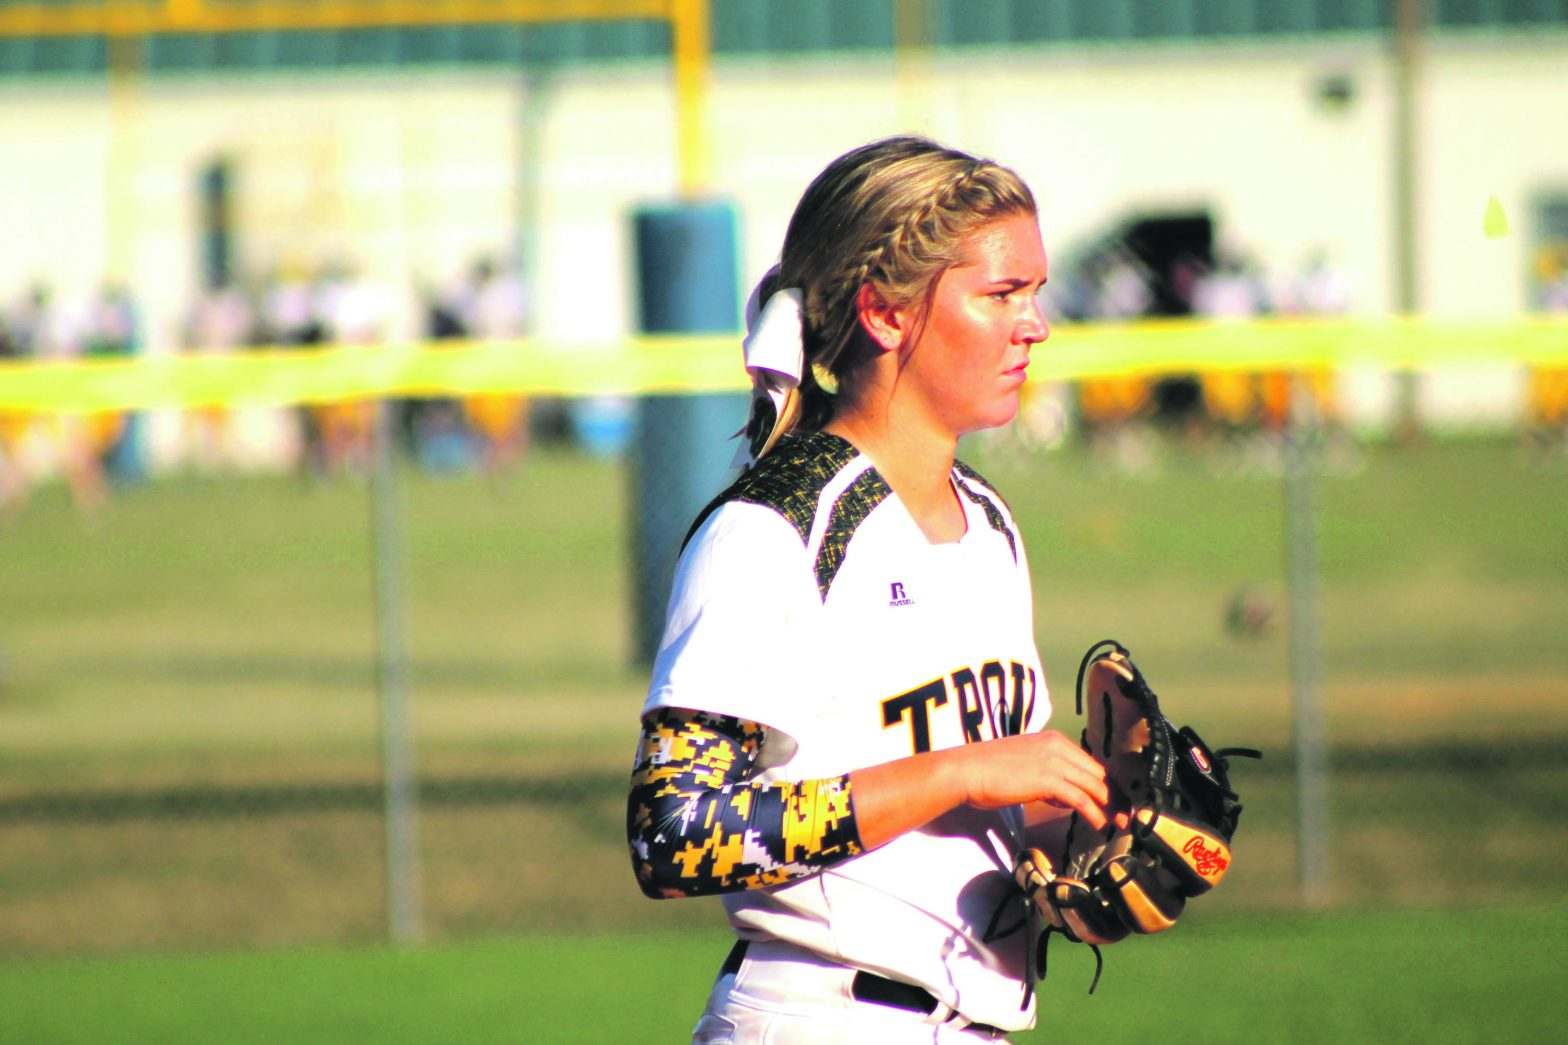 Hard Times Continue For Troup,  Lady Tigers Bow To Chapel Hill